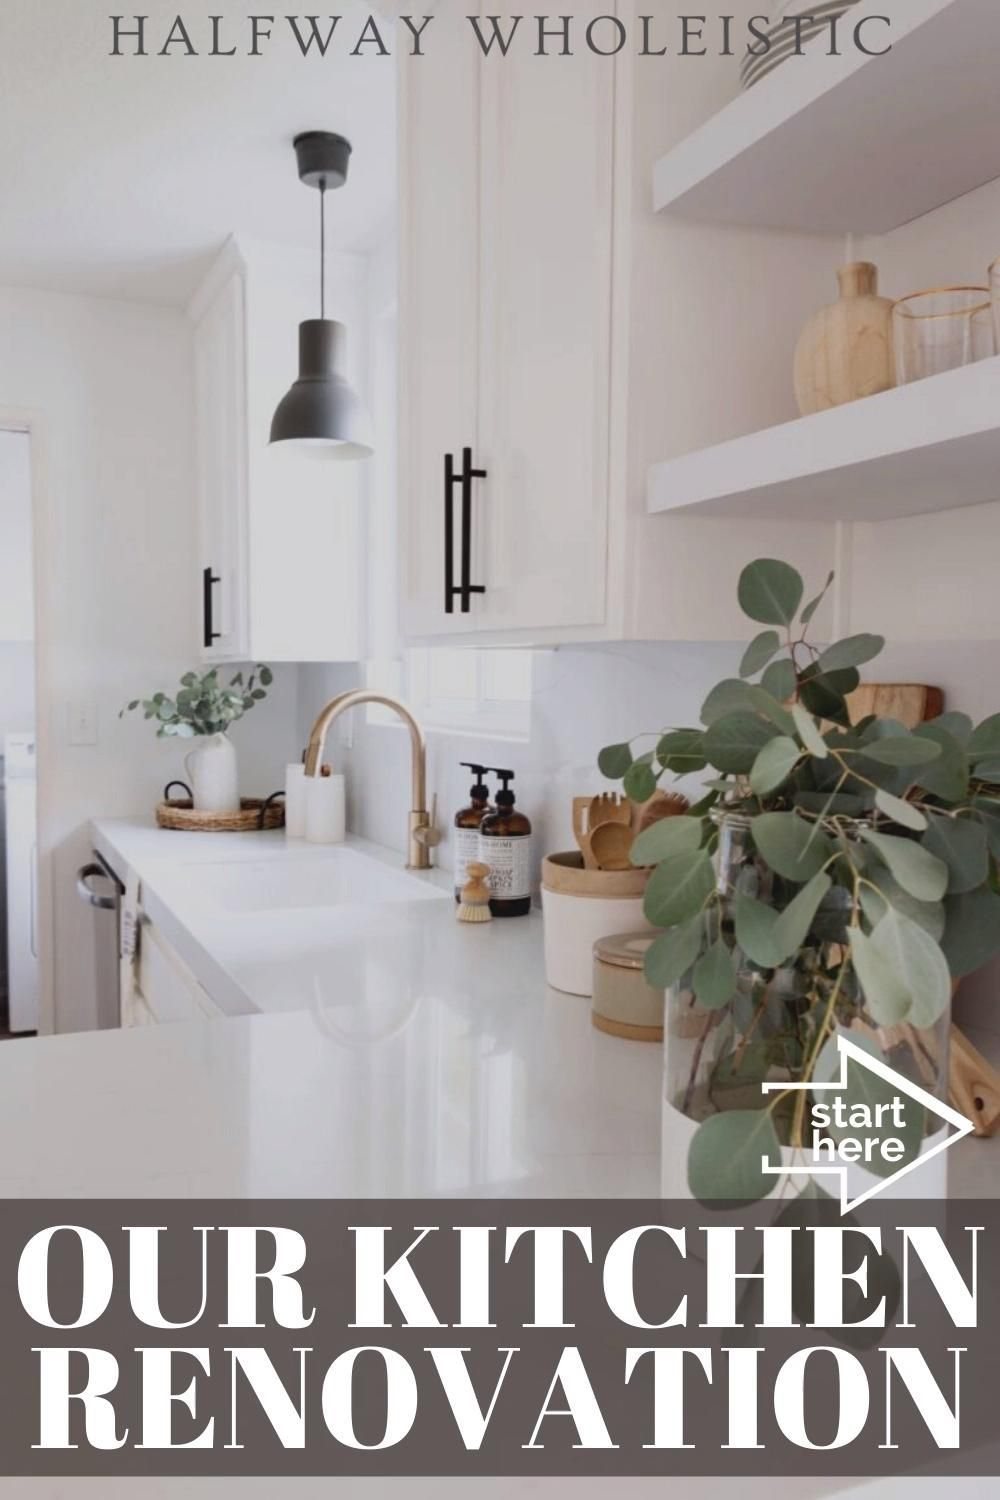 Click to see our kitchen renovation on Halfway Wholeistic! Kitchen home decor style ideas and kitchen design inspiration for your next kitchen renovation. Kitchen home decor style ideas and kitchen design inspiration for your next kitchen renovation. Best kitchen ideas remodeling budget small and kitchen remodel on a budget small diy. These are kitchen decorating ideas themes rustic and kitchen decorating ideas on a budget diy small spaces. #kitchen #renovation #home #EASYRECIPECHEF